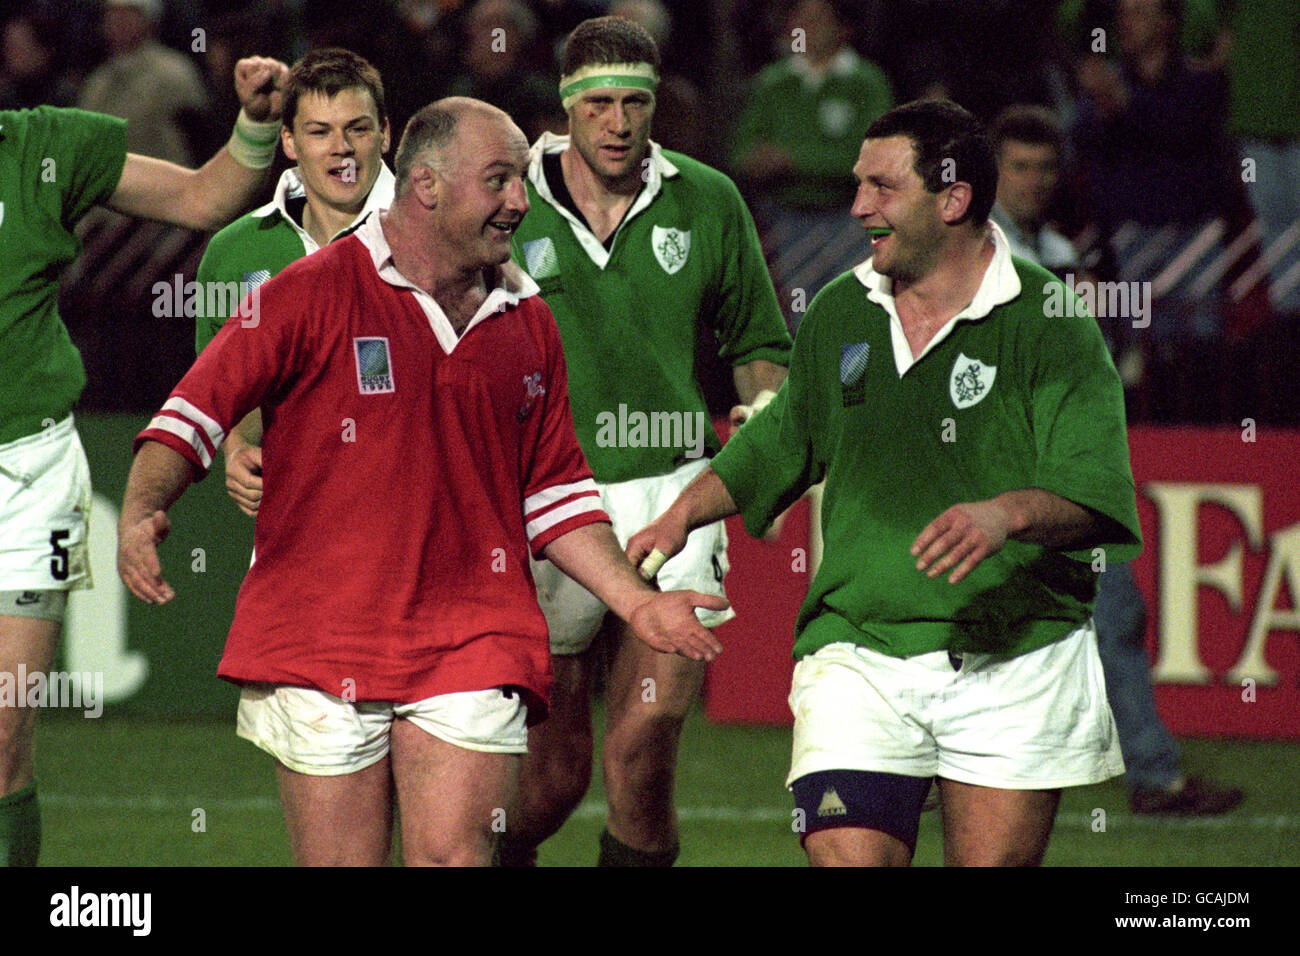 Rugby Union - World Cup South Africa 1995 - Pool C - Ireland v Wales - Ellis Park, Johannesburg - Stock Image